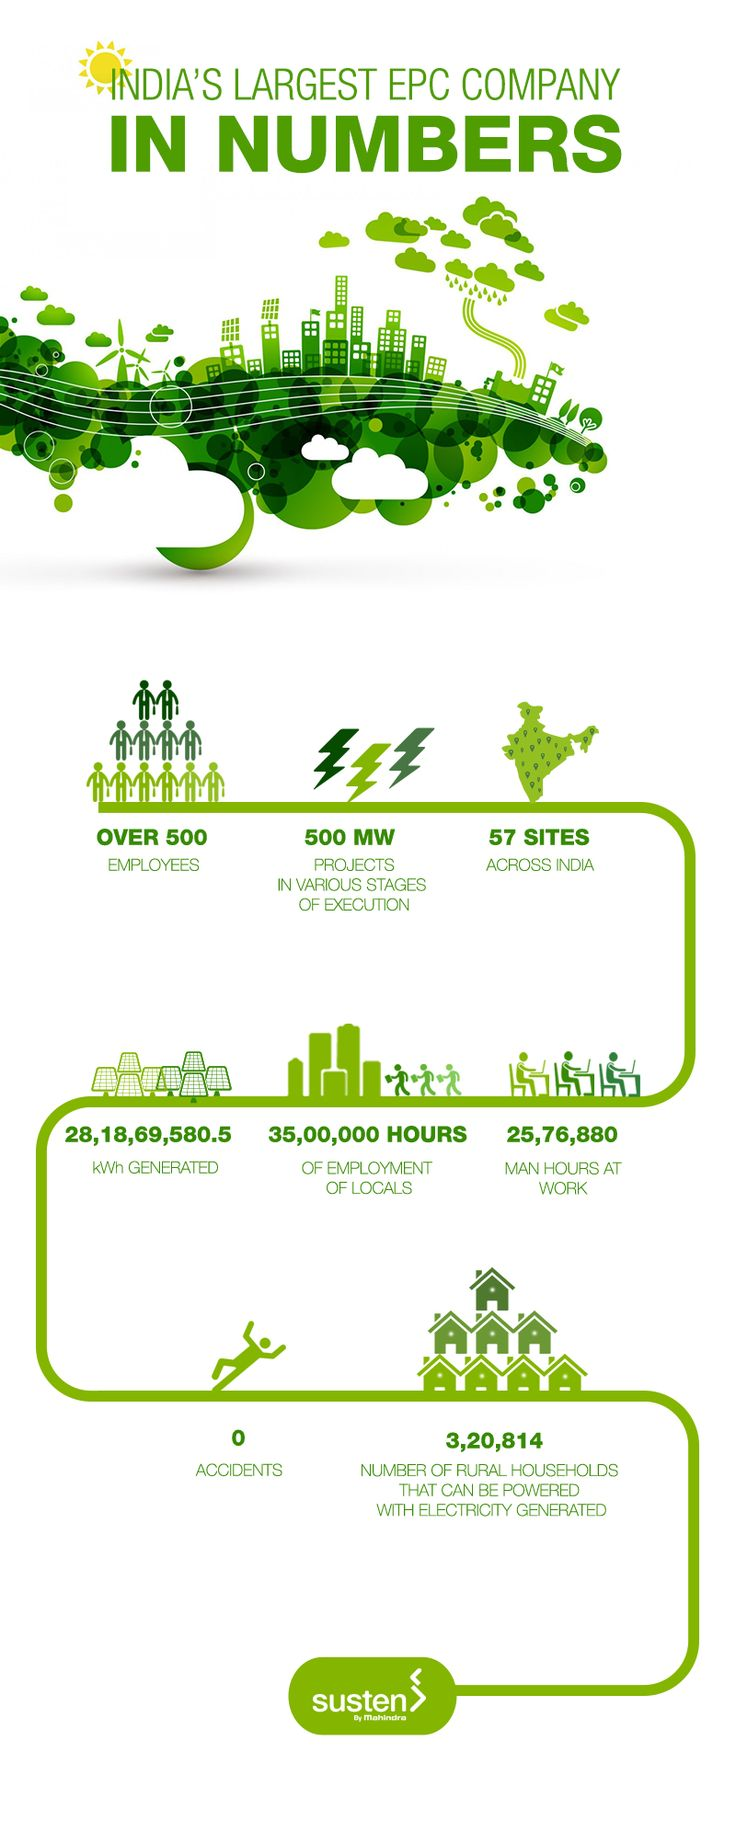 A glimpse of what Mahindra Susten is, our achievements, goals and how we focus on being the most admirable green solutions company in India.